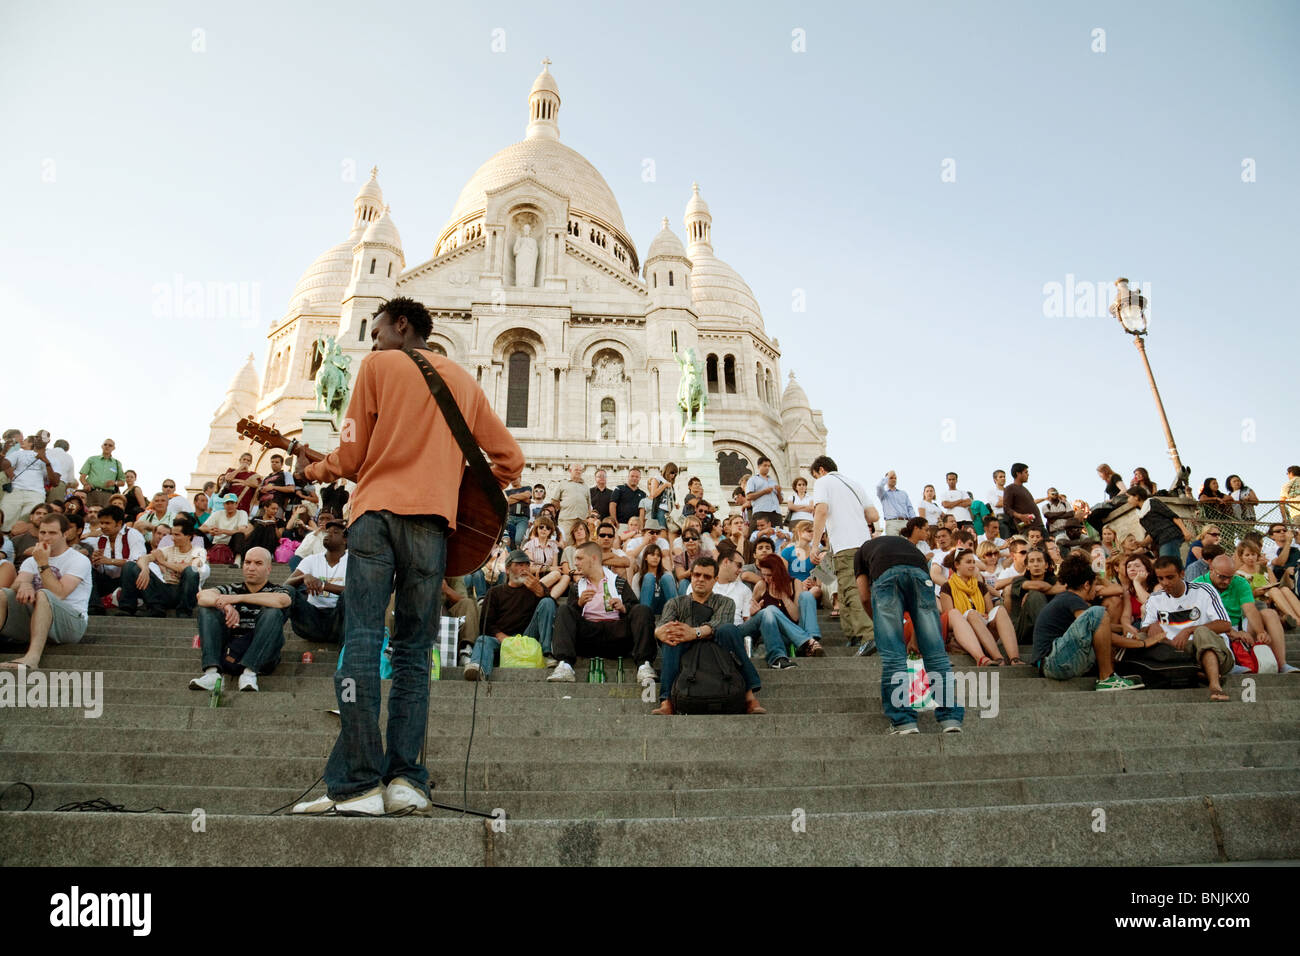 Street Musician playing on the steps of sacre Coeur, Montmartre, Paris - Stock Image